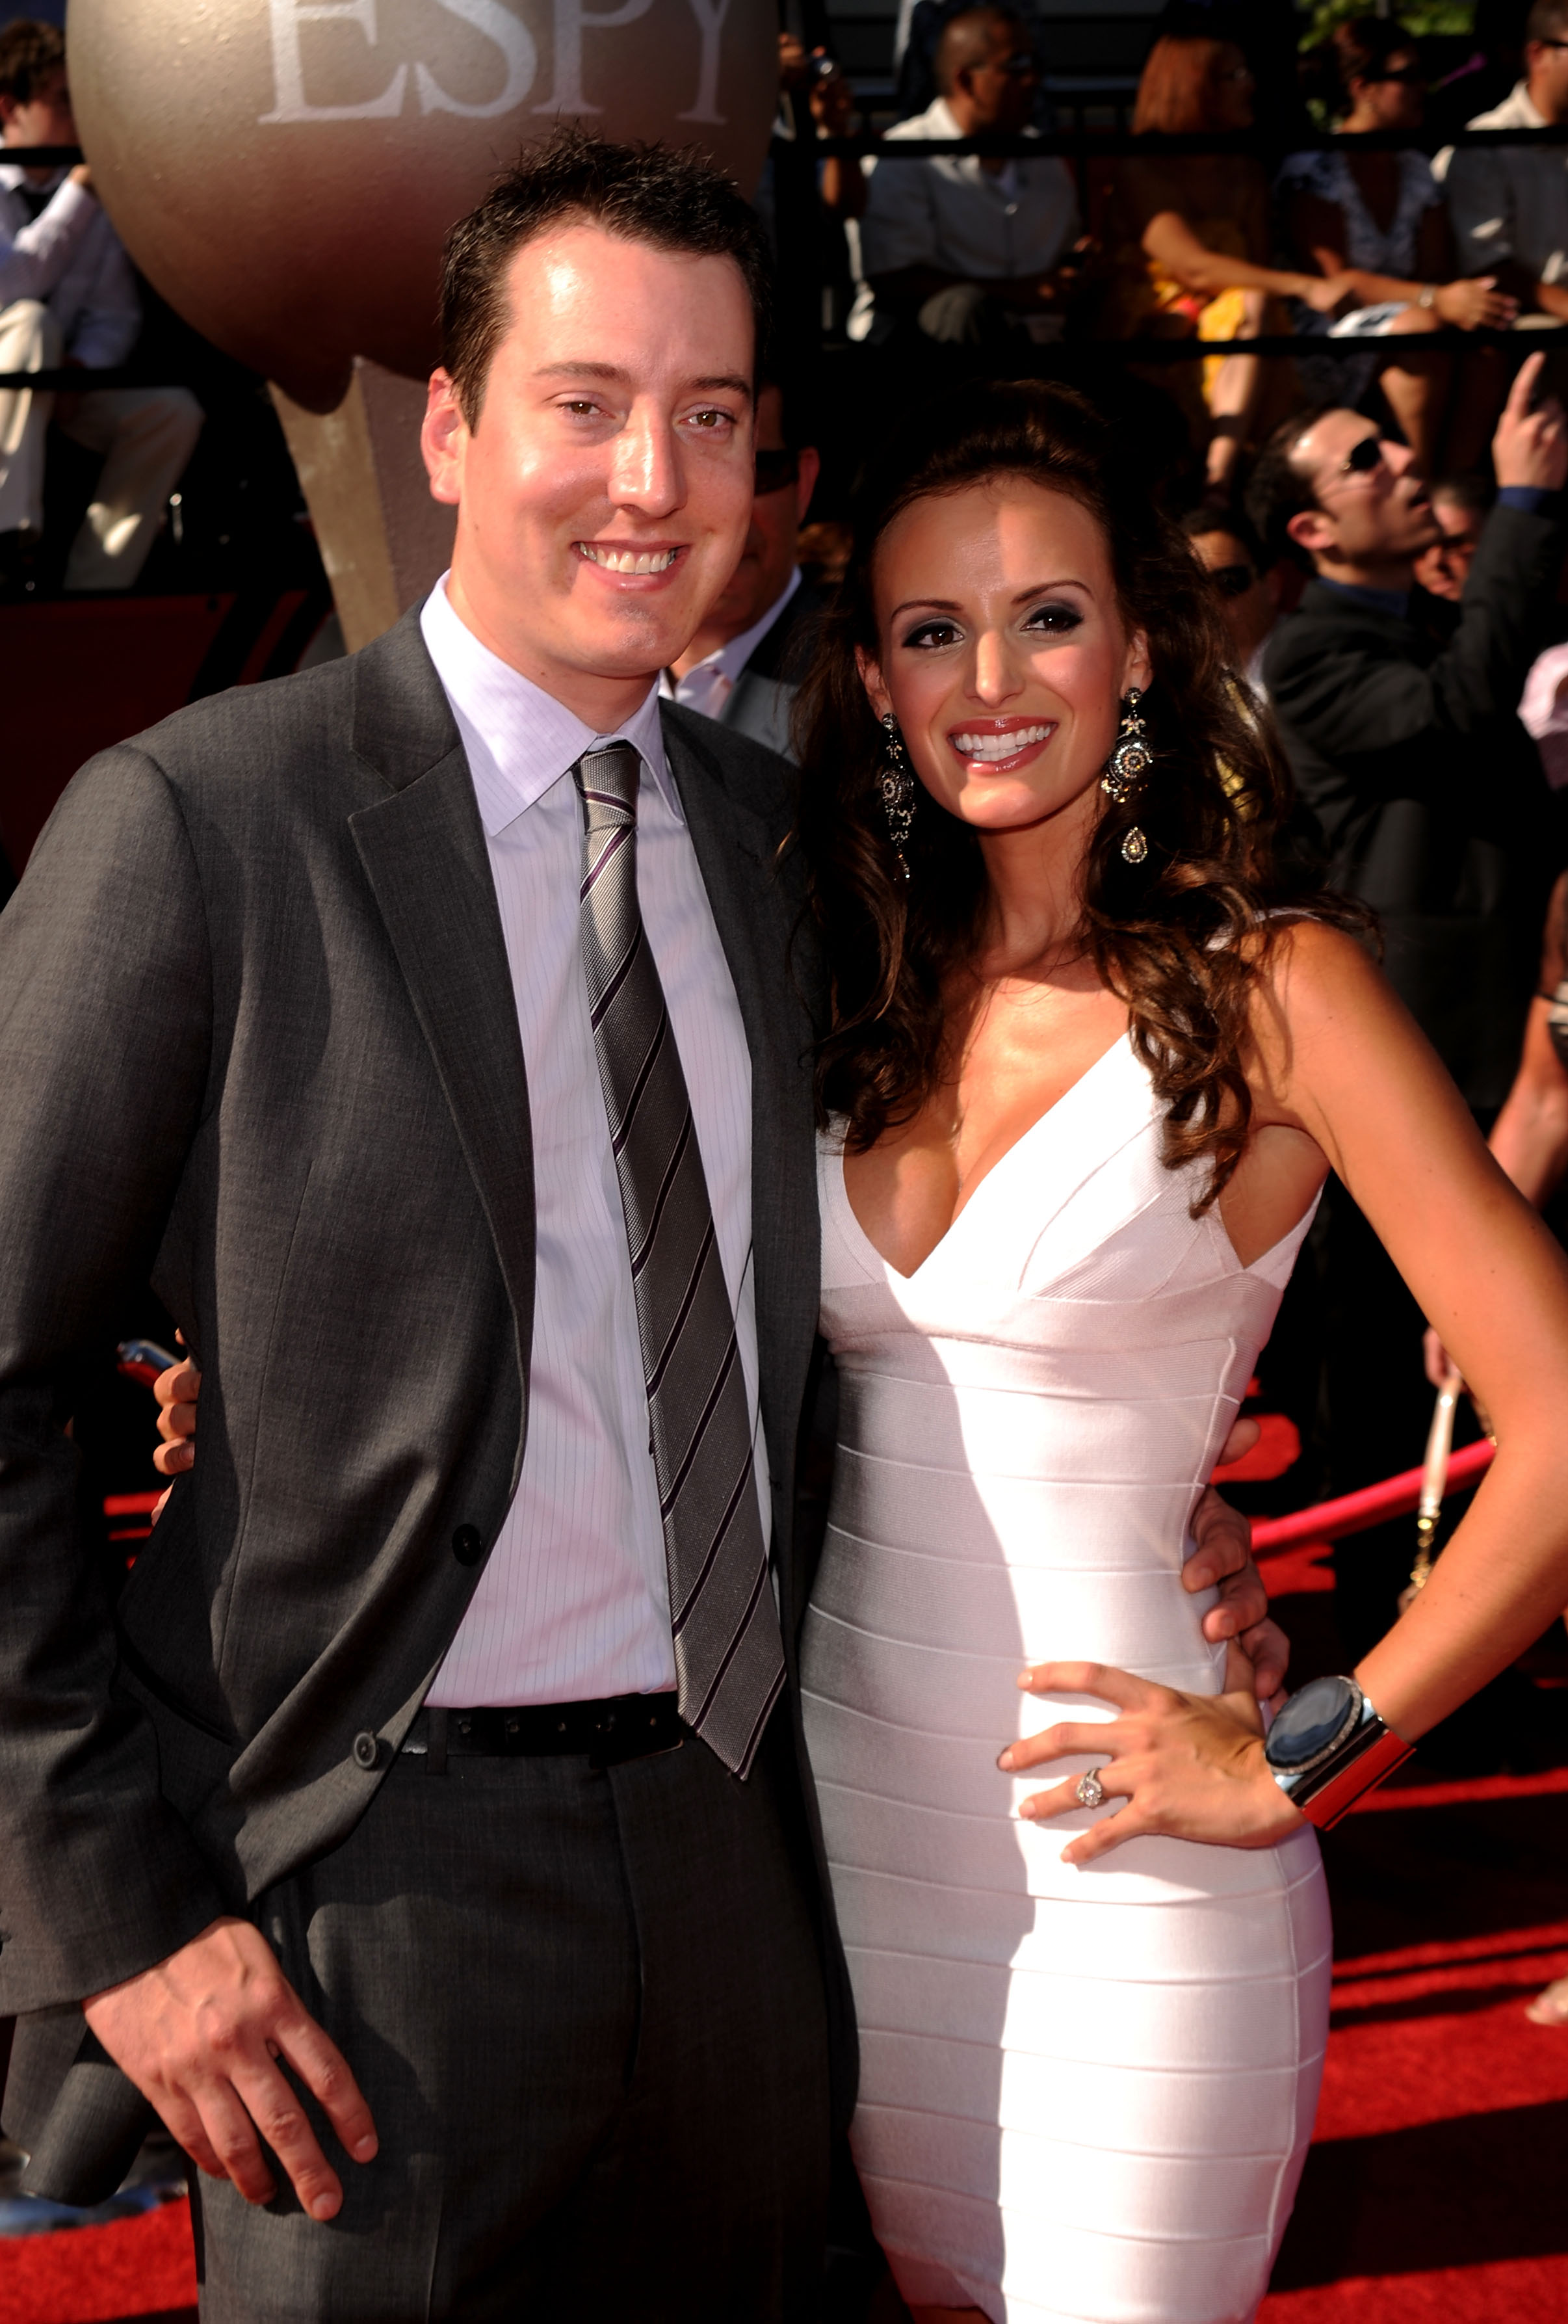 NASCAR wives love this one opportunity to outshine their spouses & as always they will steal the show.